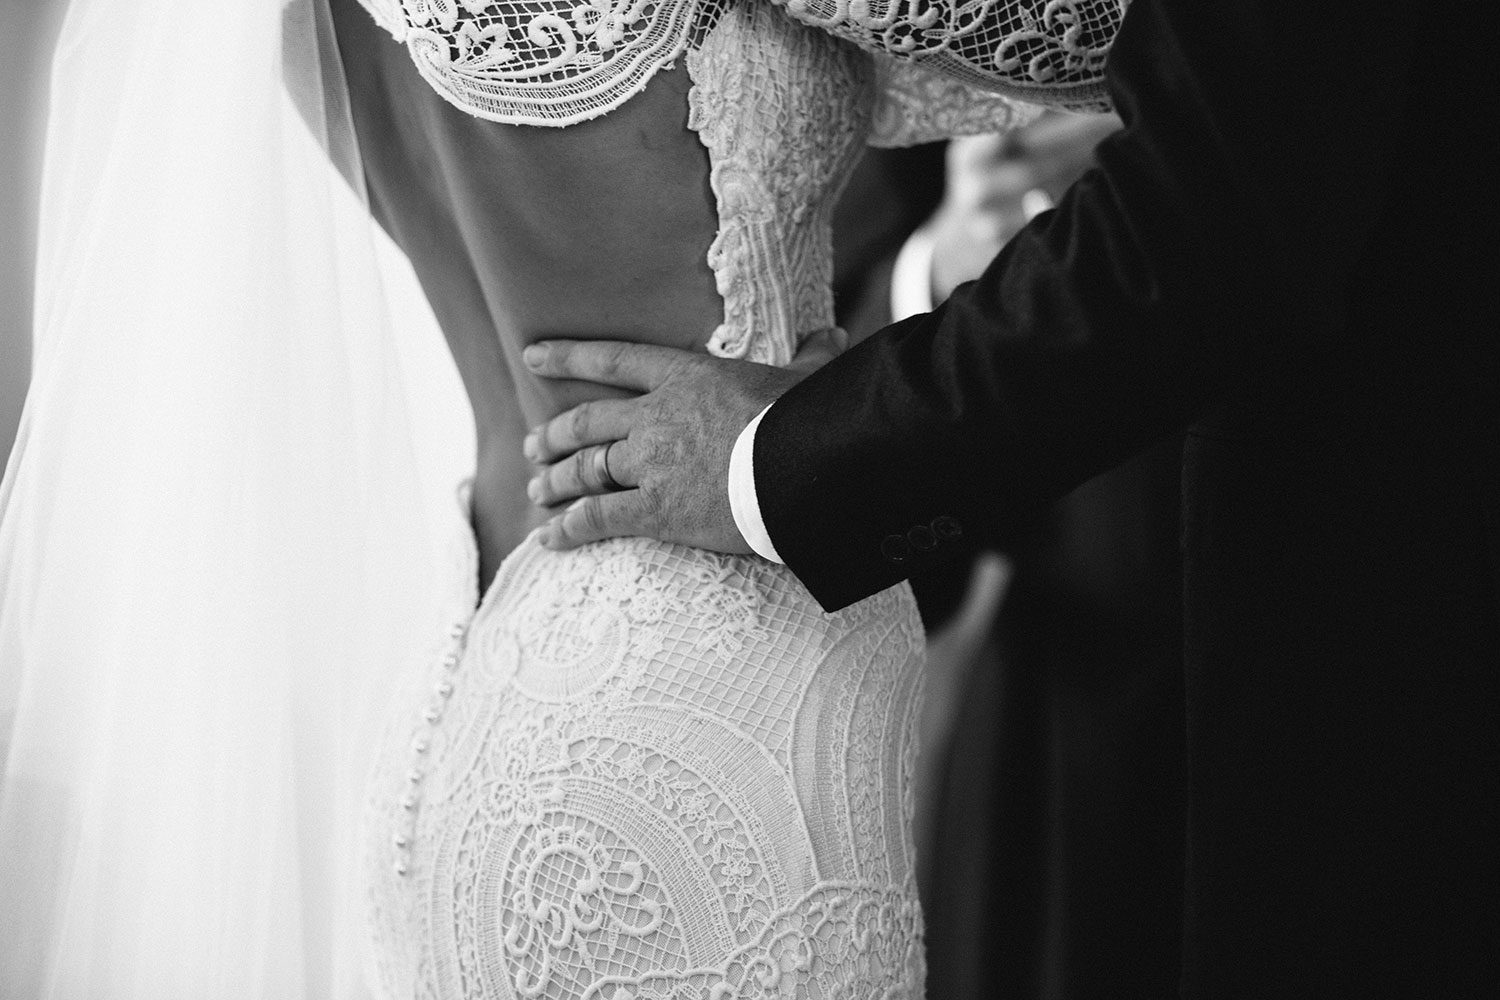 Bride wearing Sabine wedding gown by Auckland wedding dress maker Vinka Design, with French crochet lace detail and long sleeves - close up of back of dress